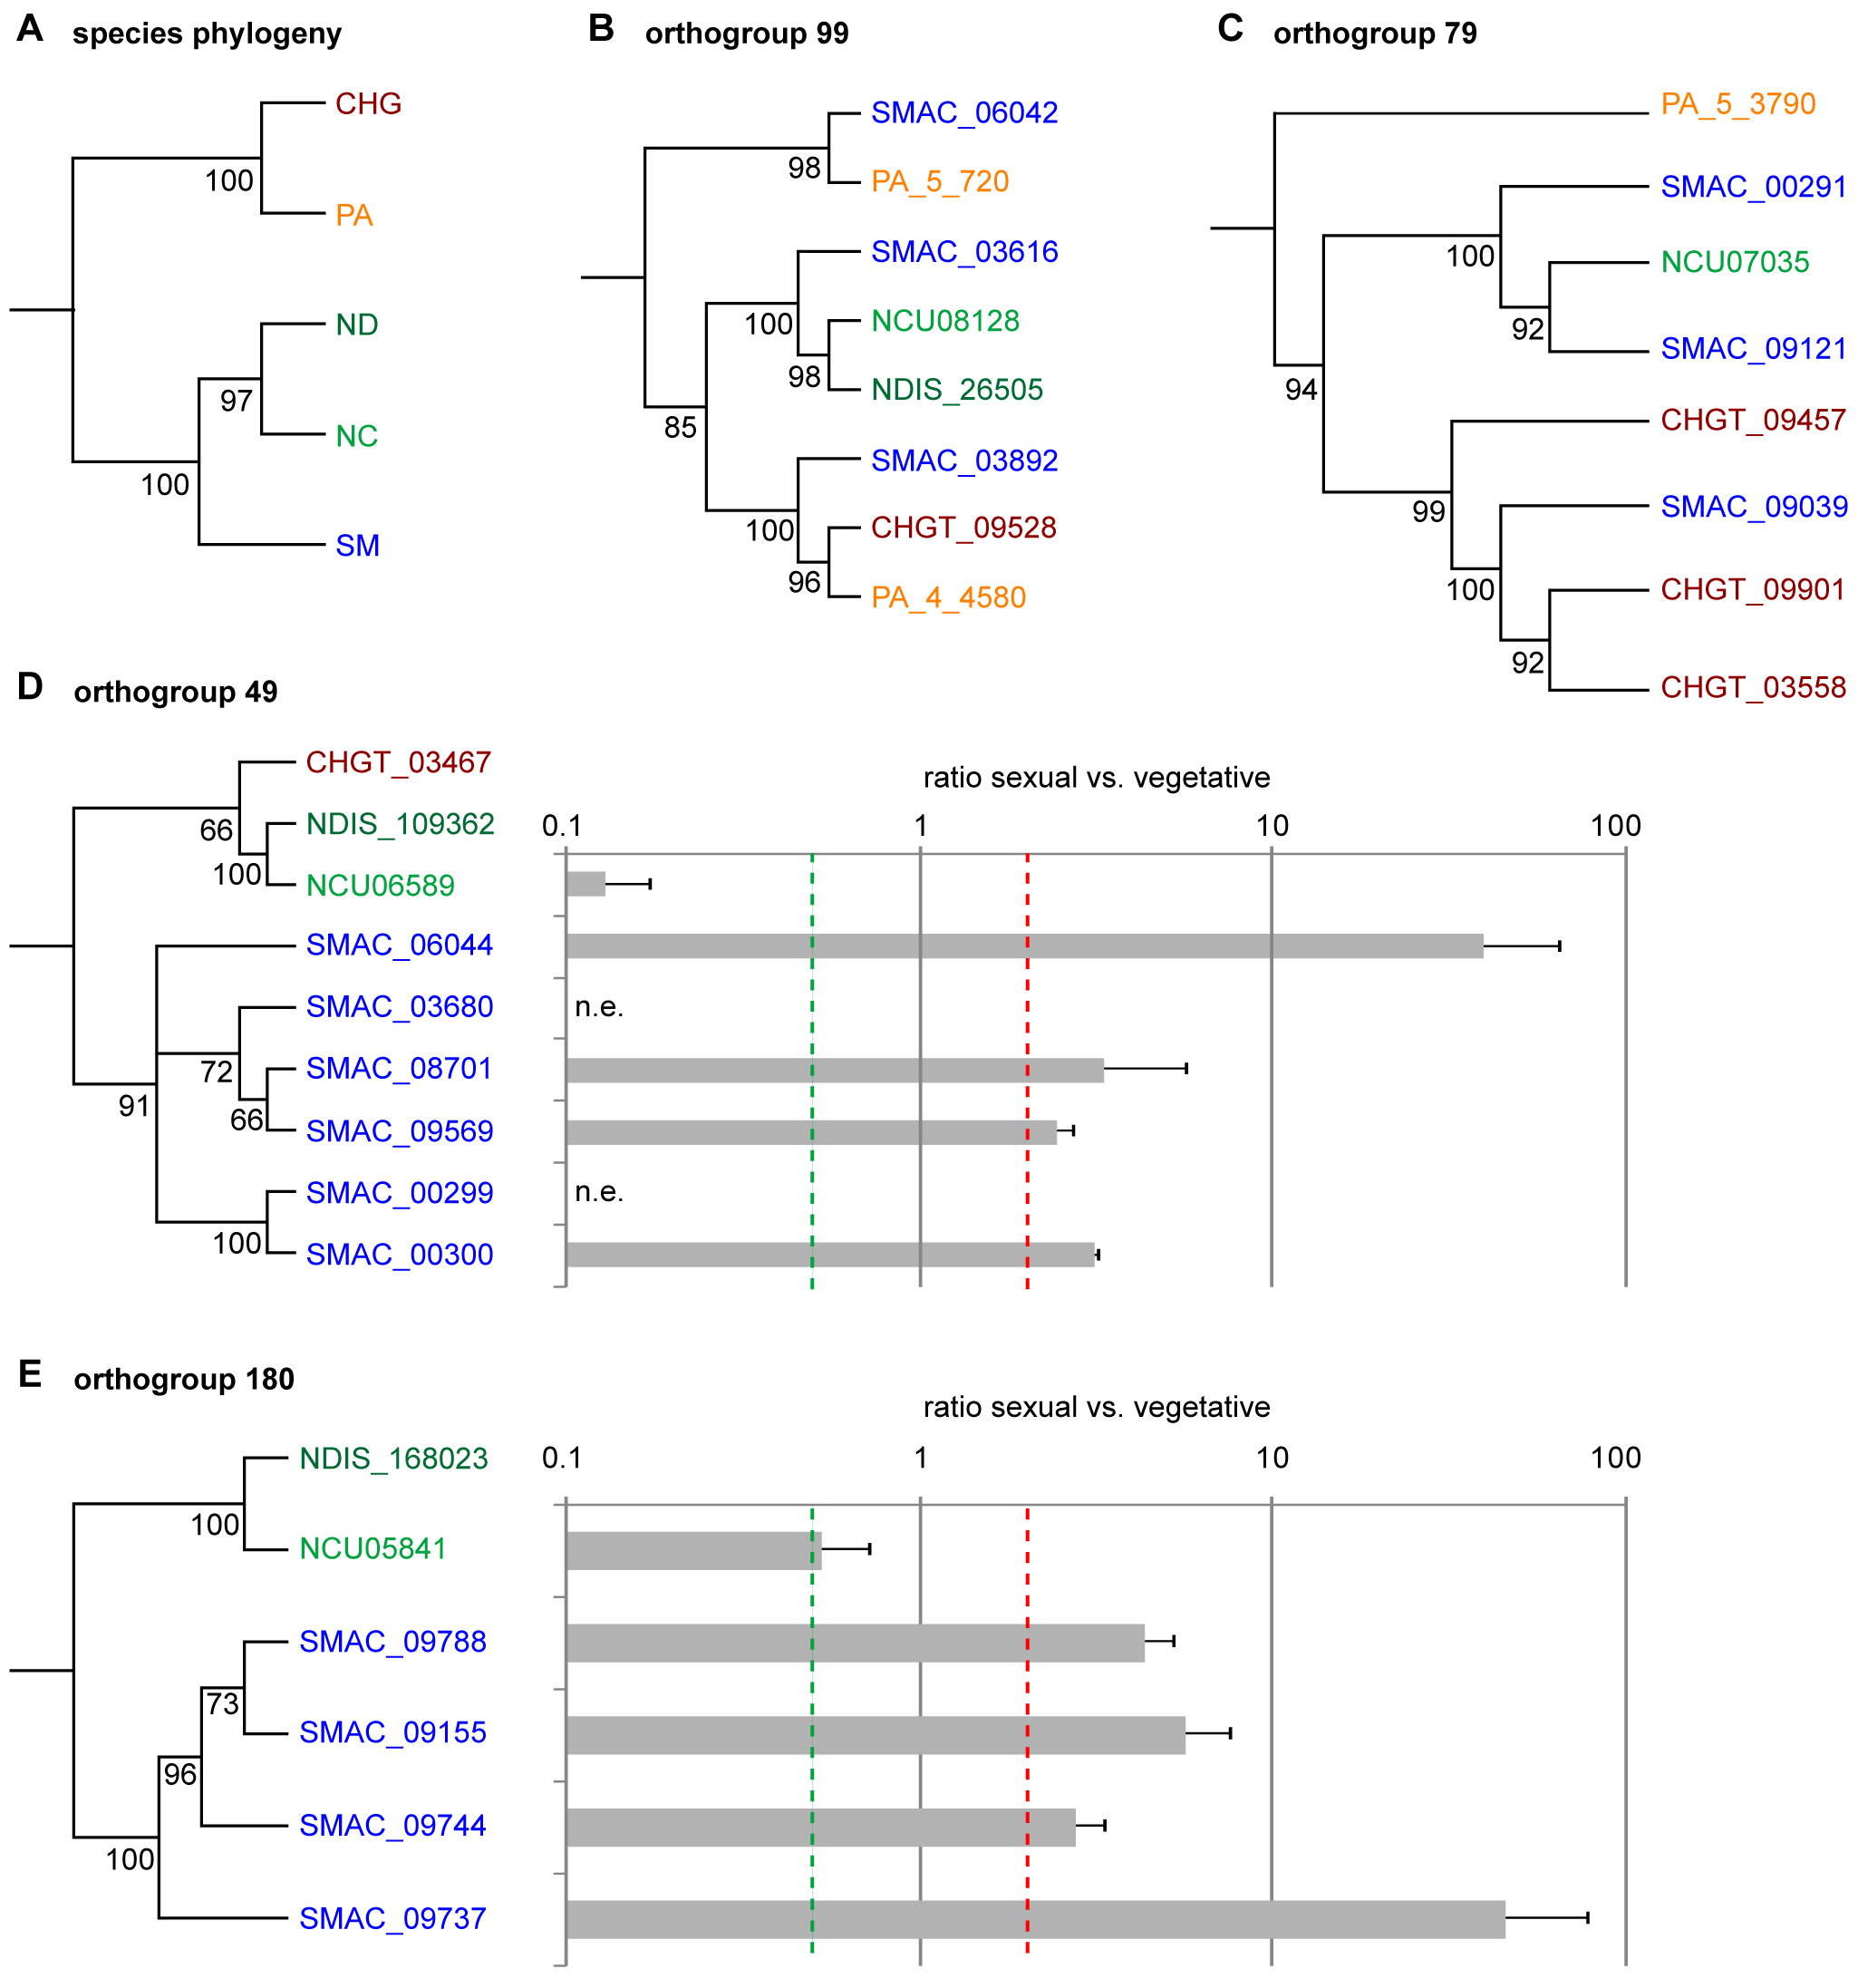 Phylogenetic analysis and expression of genes from different orthogroups from an OrthoMCL analysis of <i>S. macrospora</i> (SM), <i>N. crassa</i> (NC), <i>N. discreta</i> (ND), <i>C. globosum</i> (CHG), and <i>P. anserina</i> (PA).